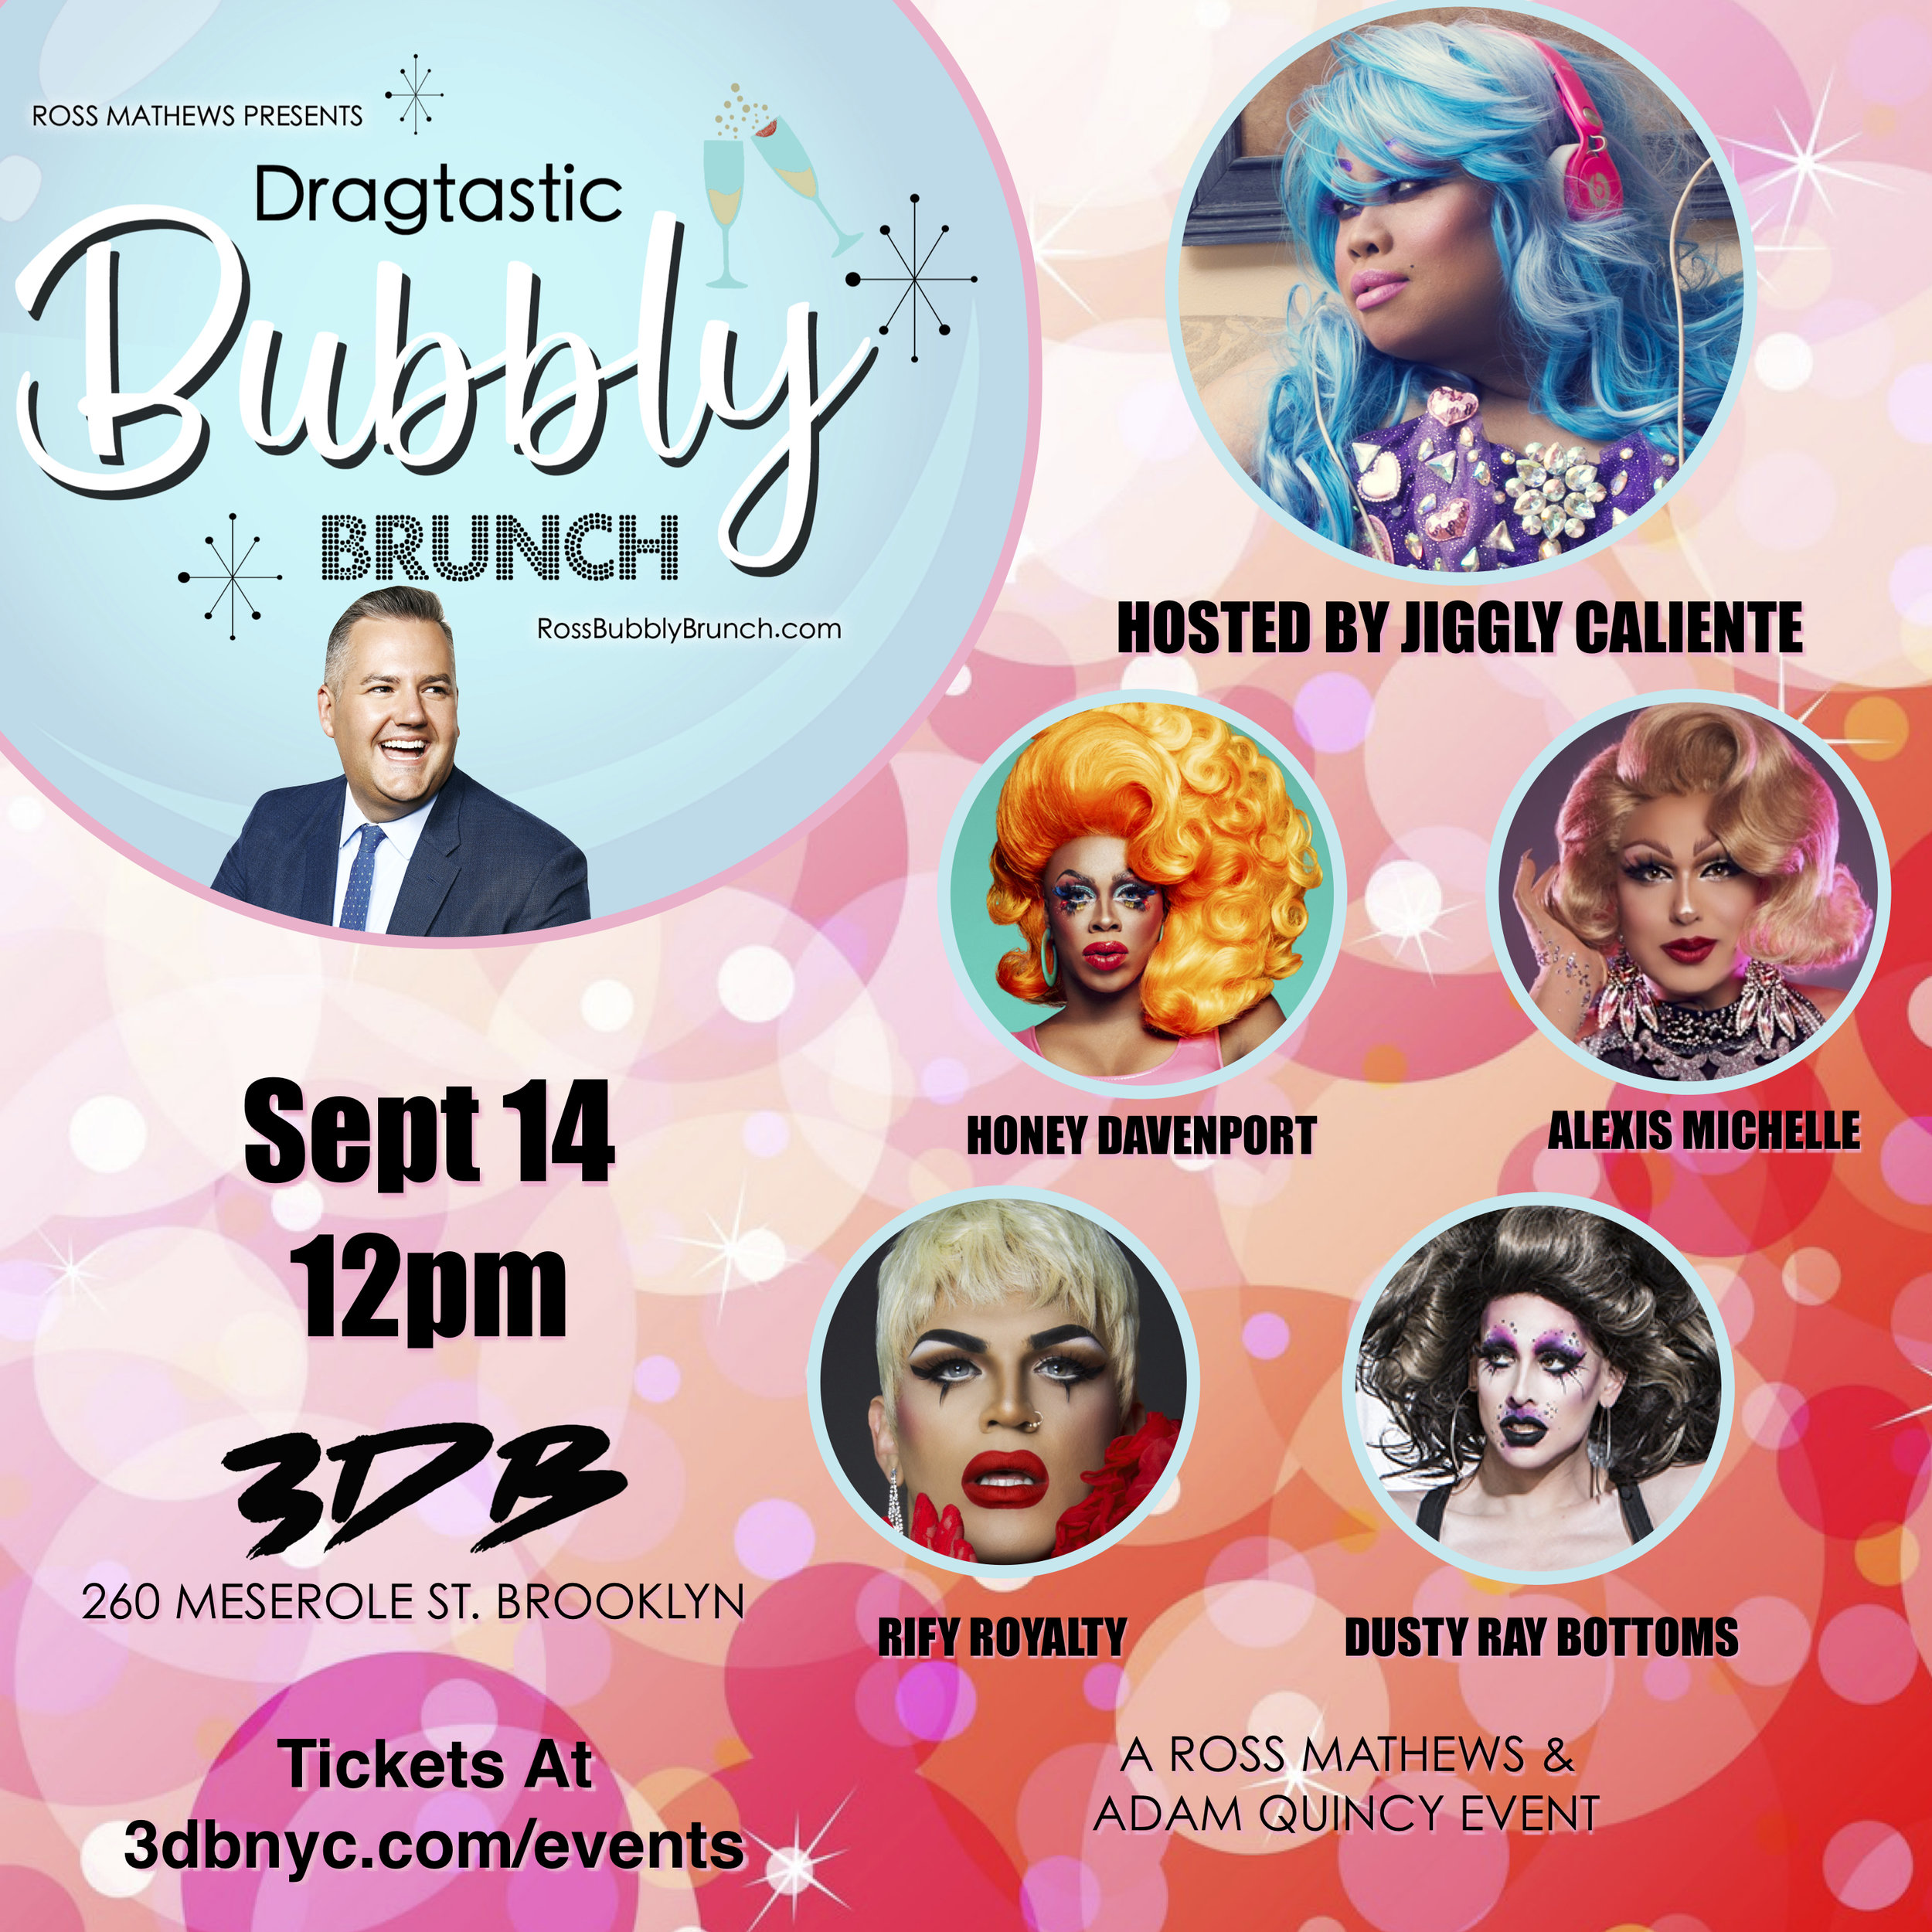 A flyer featuring Ross Mathews, Jiggly Calienty, Dusty Ray Bottoms, Rify Royalty and Honey Davenport. Brunch at 12pm on Sept 14th 2019.